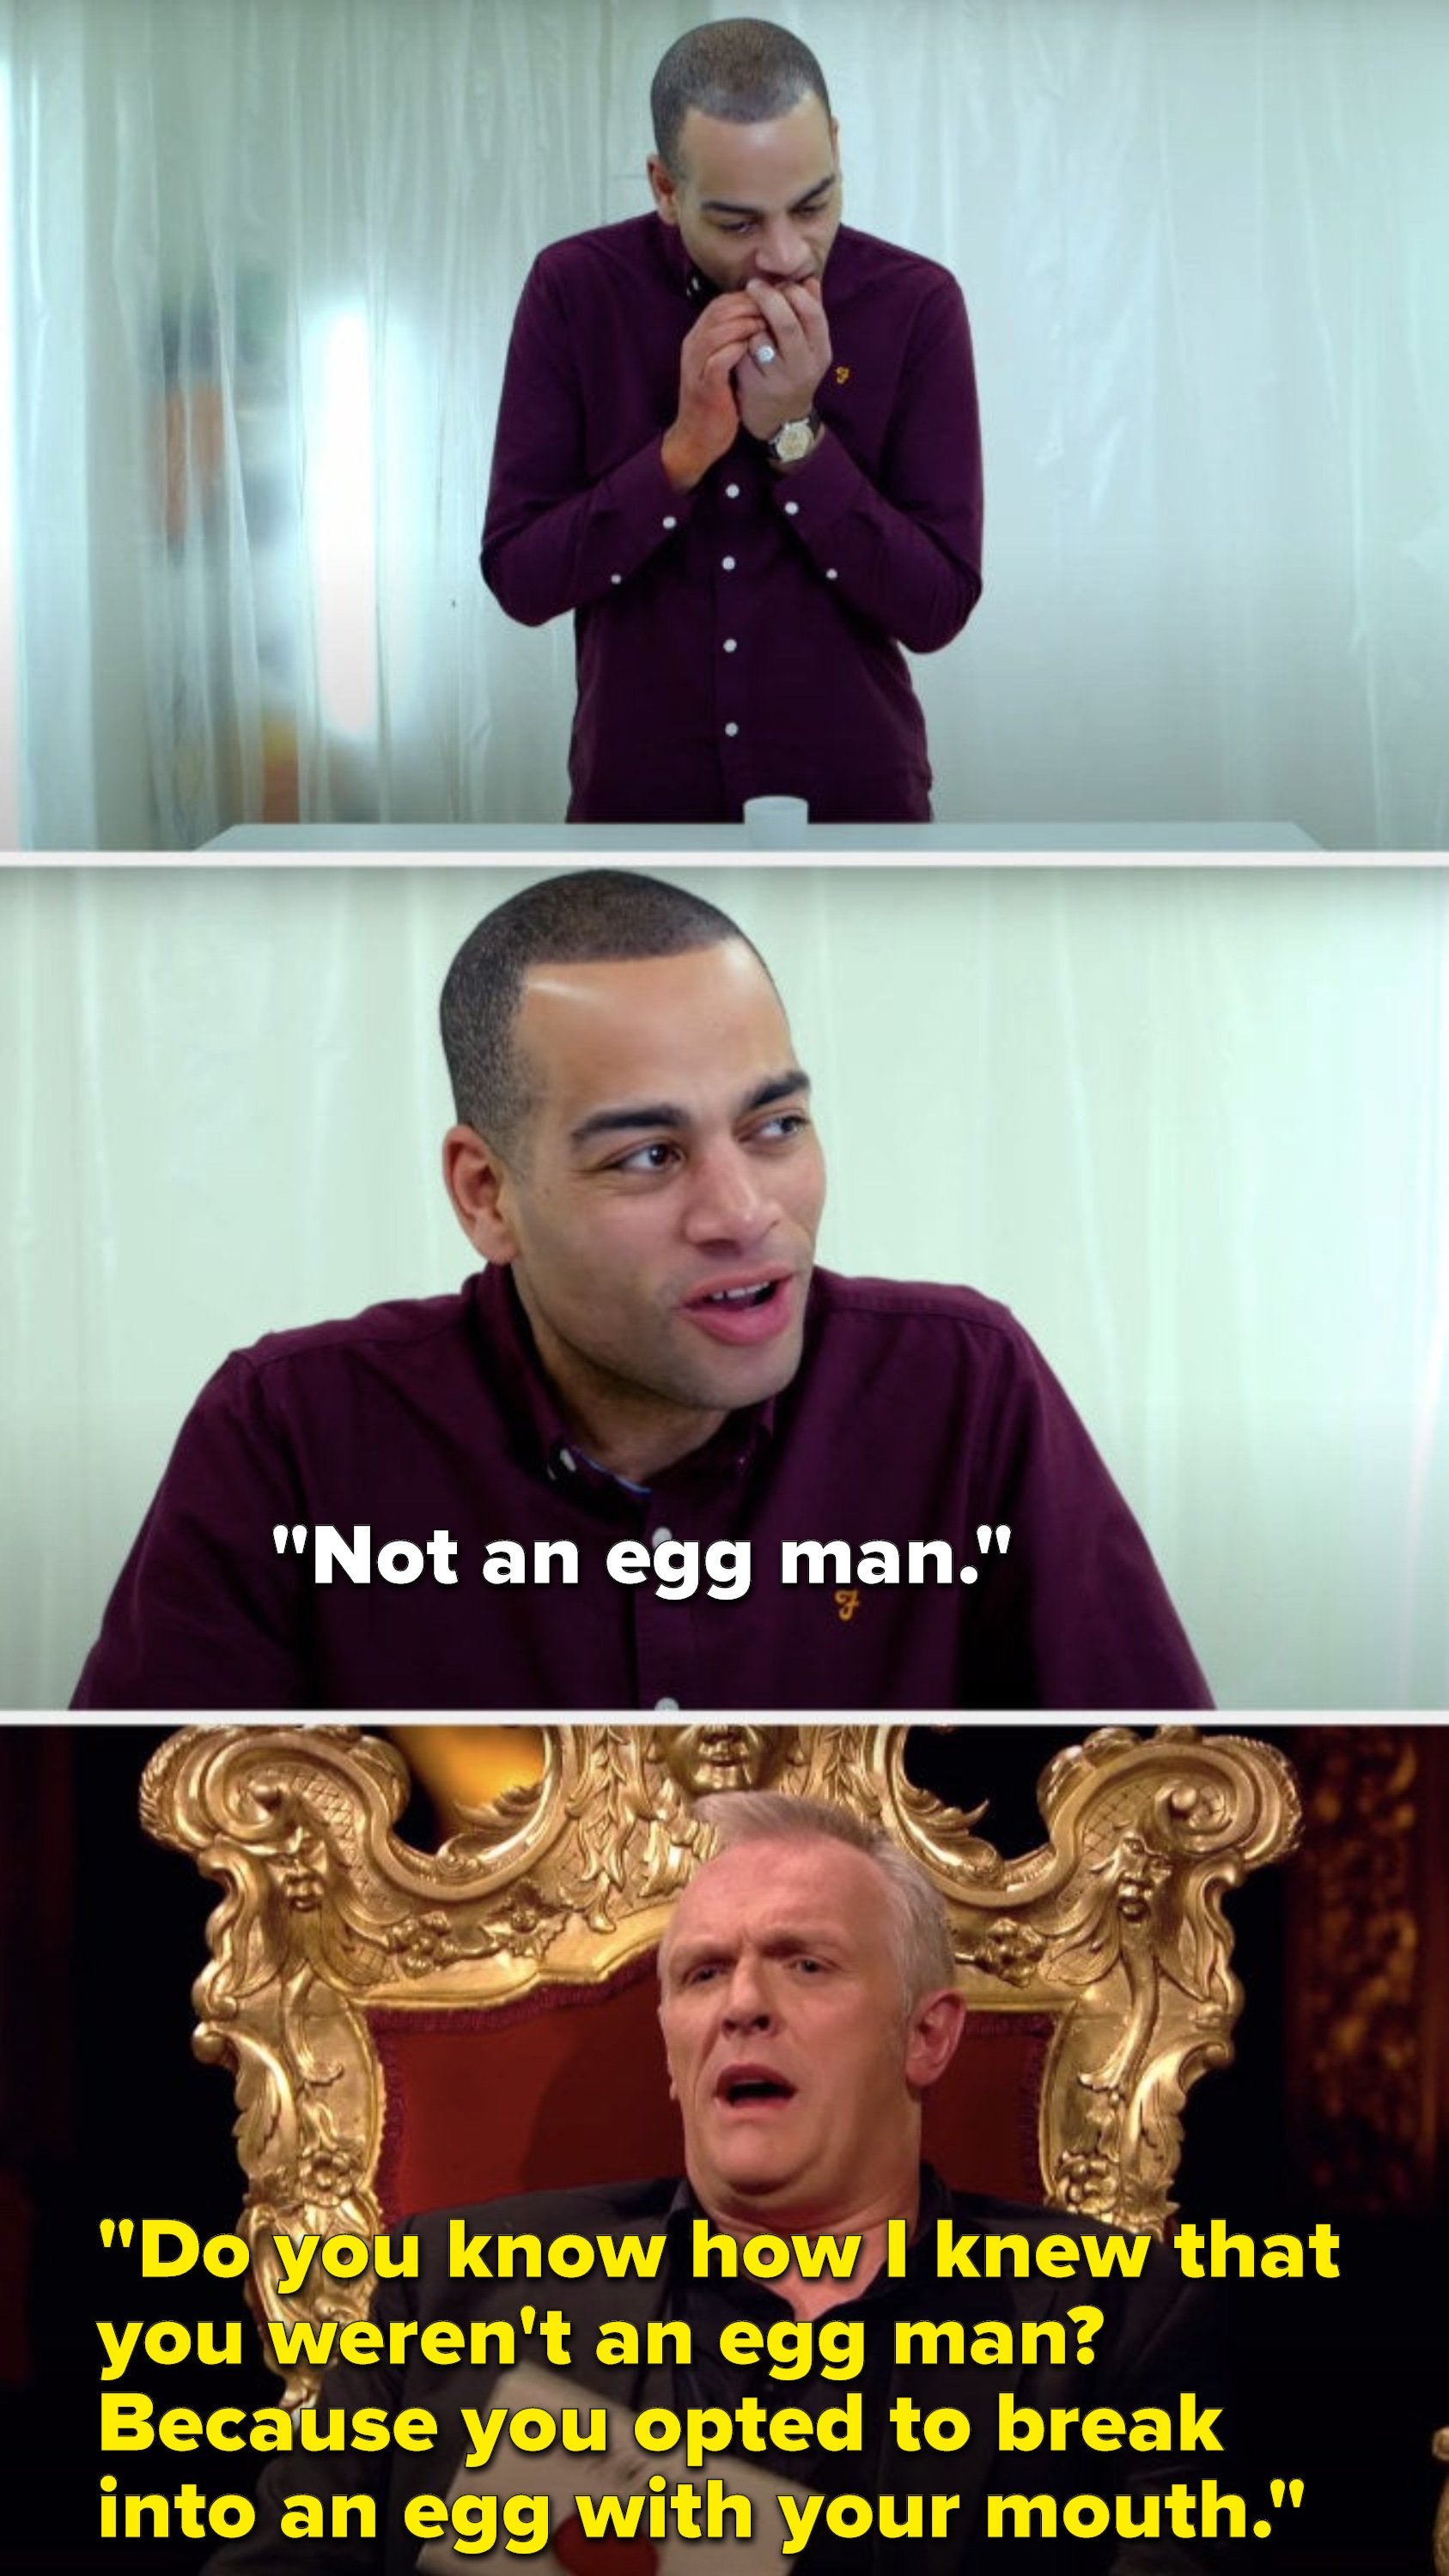 """Doc Brown tries to open an egg with his mouth and then says, """"Not an egg man,"""" and Greg says, """"Do you know how I knew that you weren't an egg man, because you opted to break into an egg with your mouth"""""""